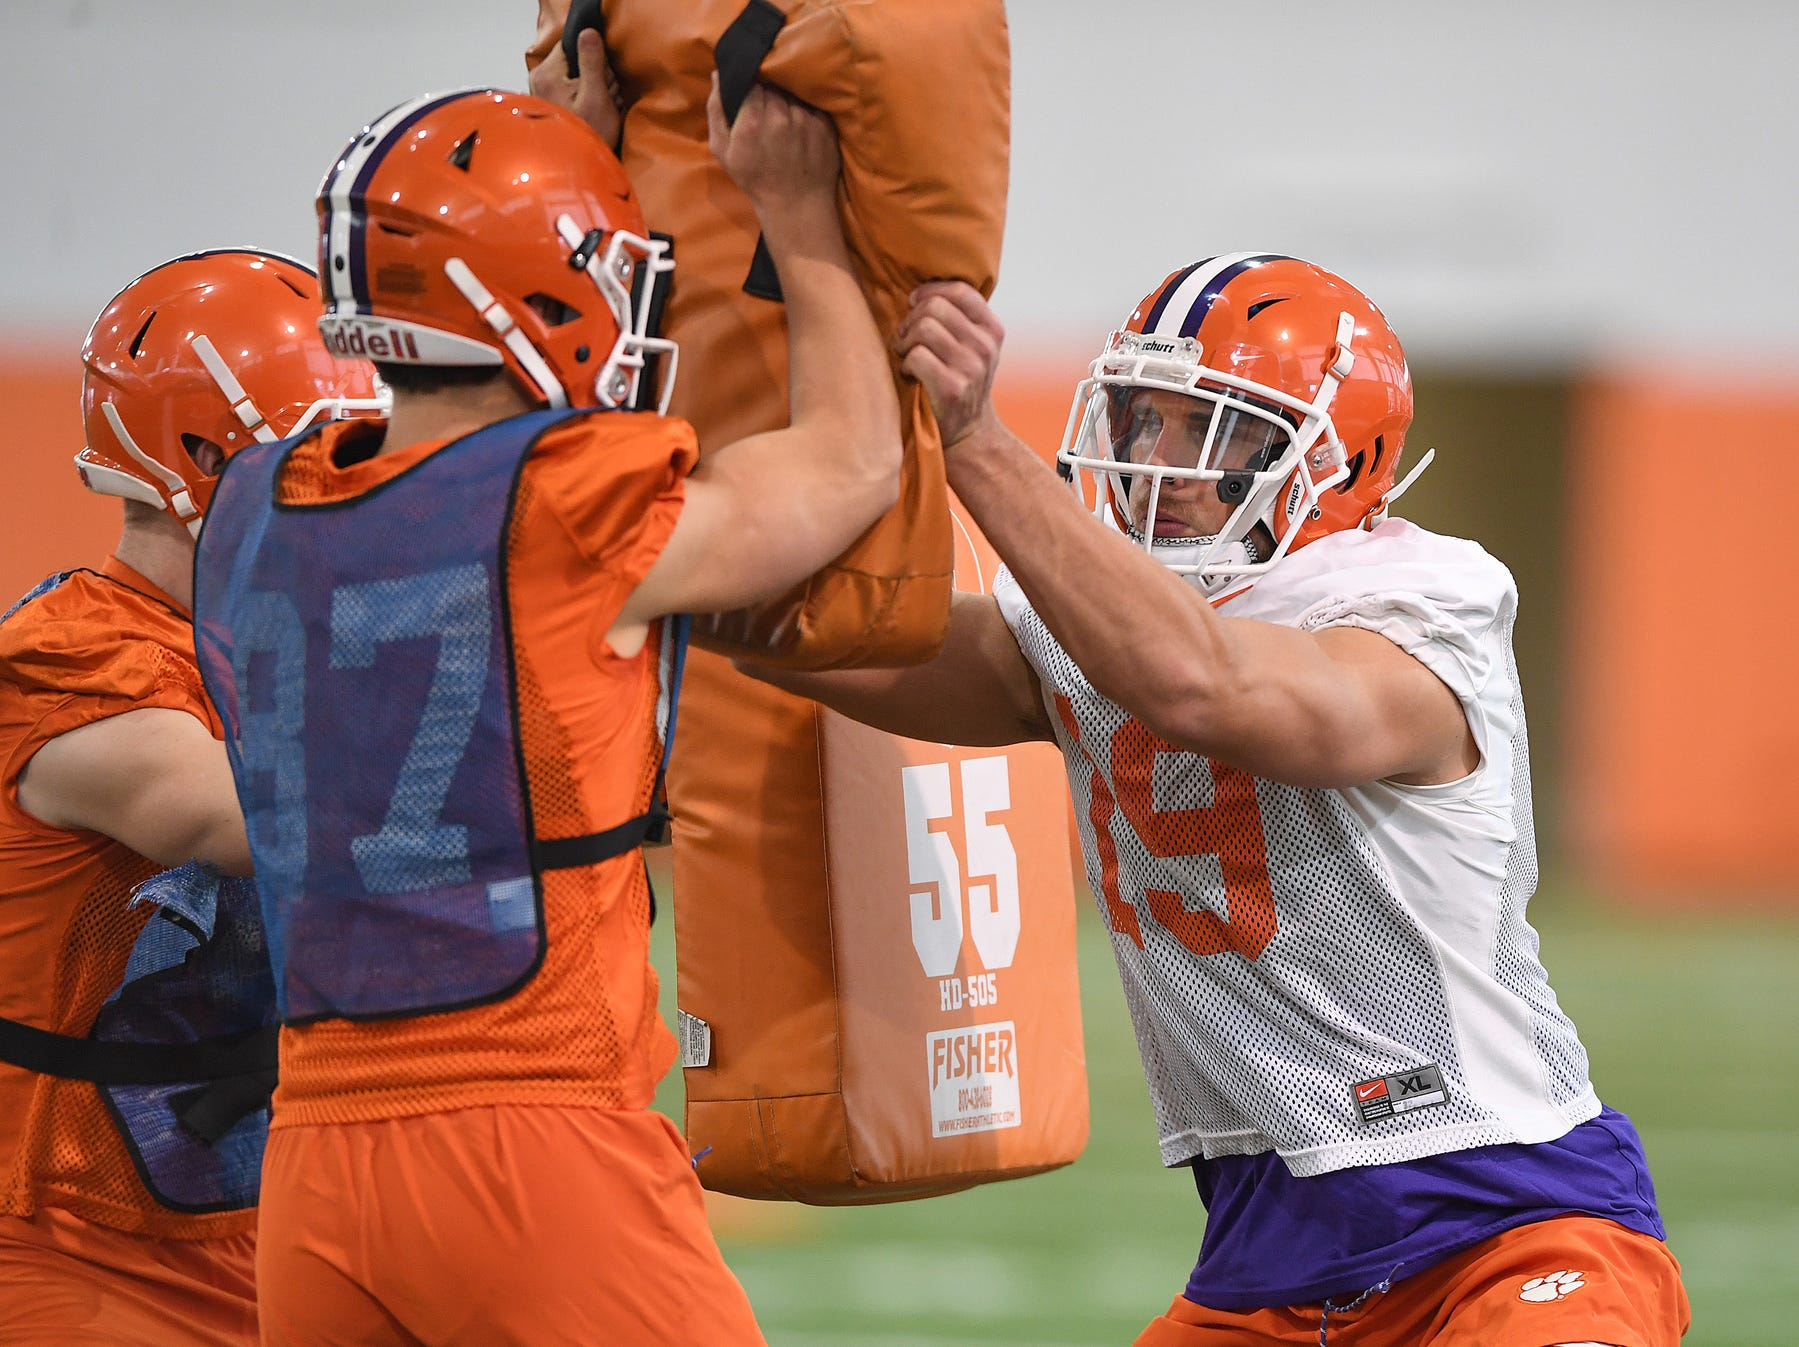 Clemson defensive back Tanner Muse (19), right, runs a drill during the Tigers Cotton Bowl practice on Wednesday, December 12, 2018.